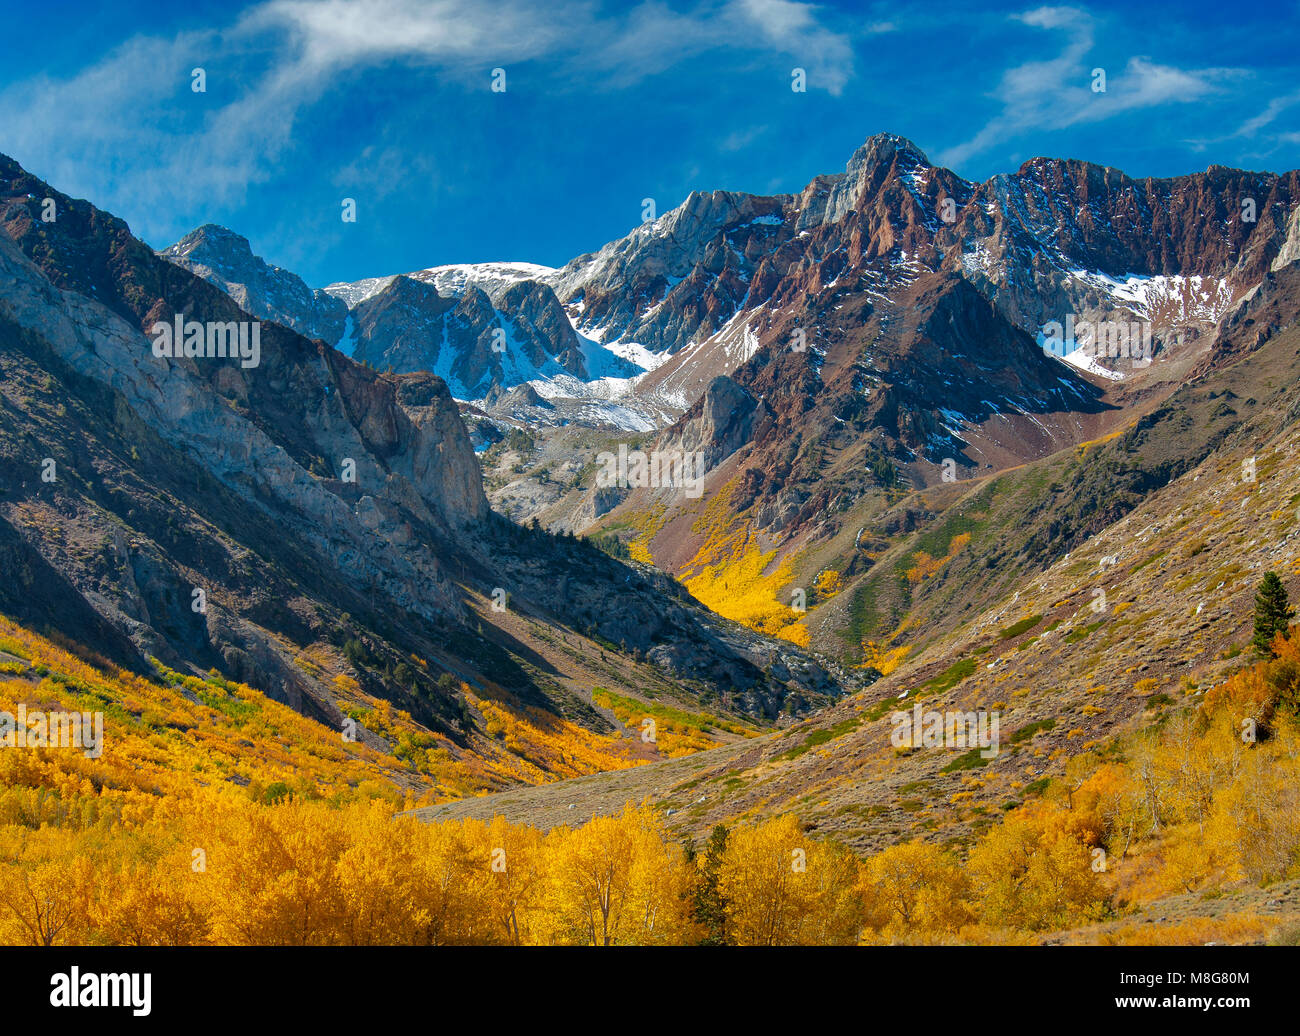 Aspen, Populus tremuloides, McGee Creek, Inyo National Forest, Eastern Sierra CA - Stock Image